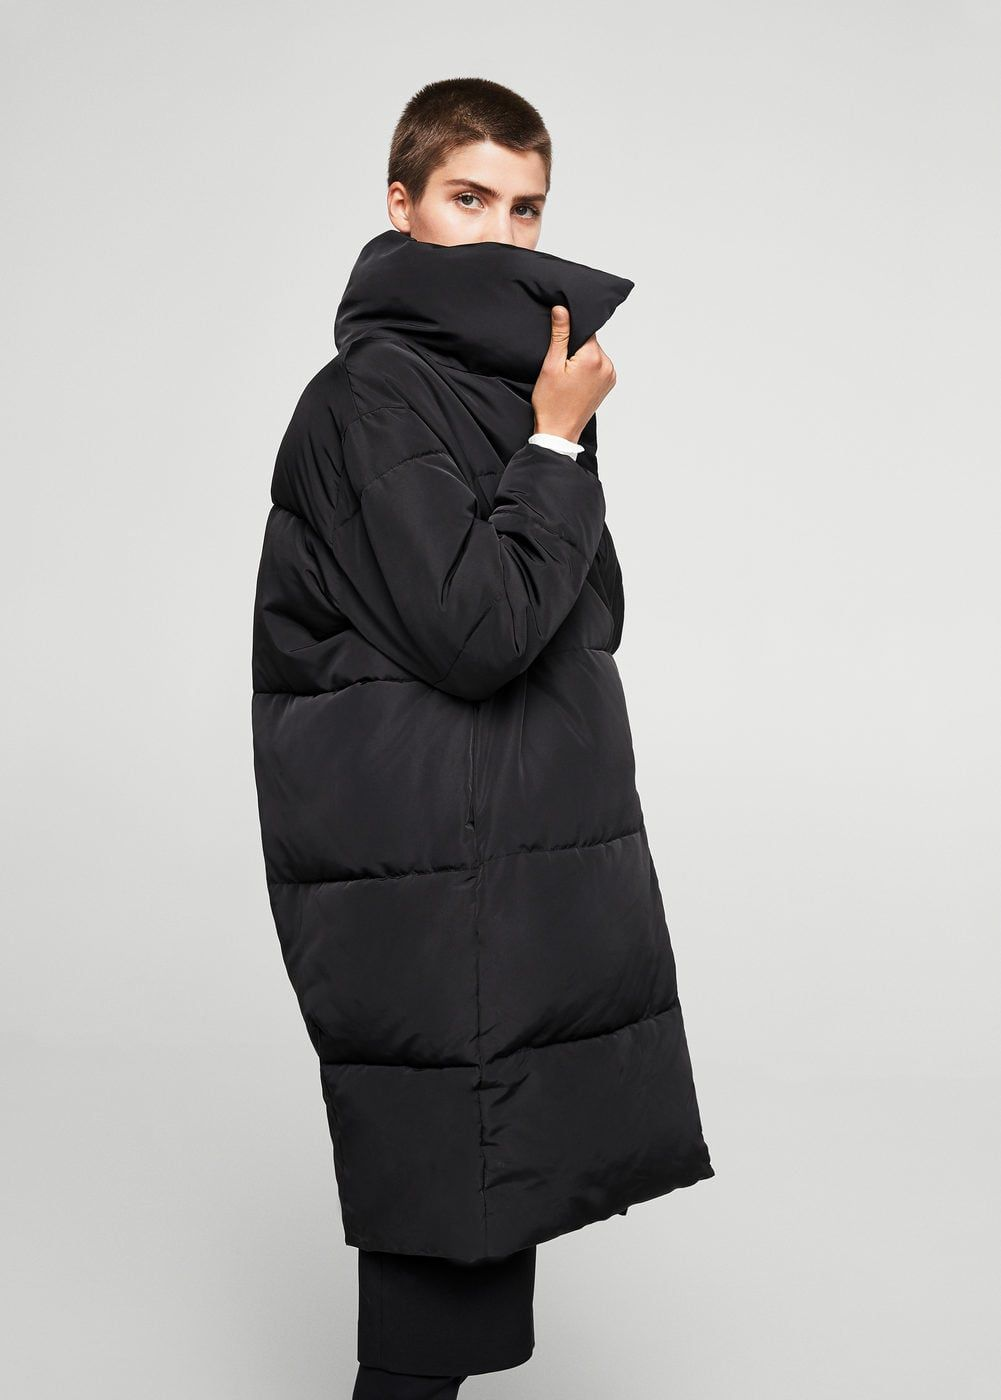 c9073ea3b Oversize quilted coat - Woman | ➕puffers➕ | Oversized puffer coat ...